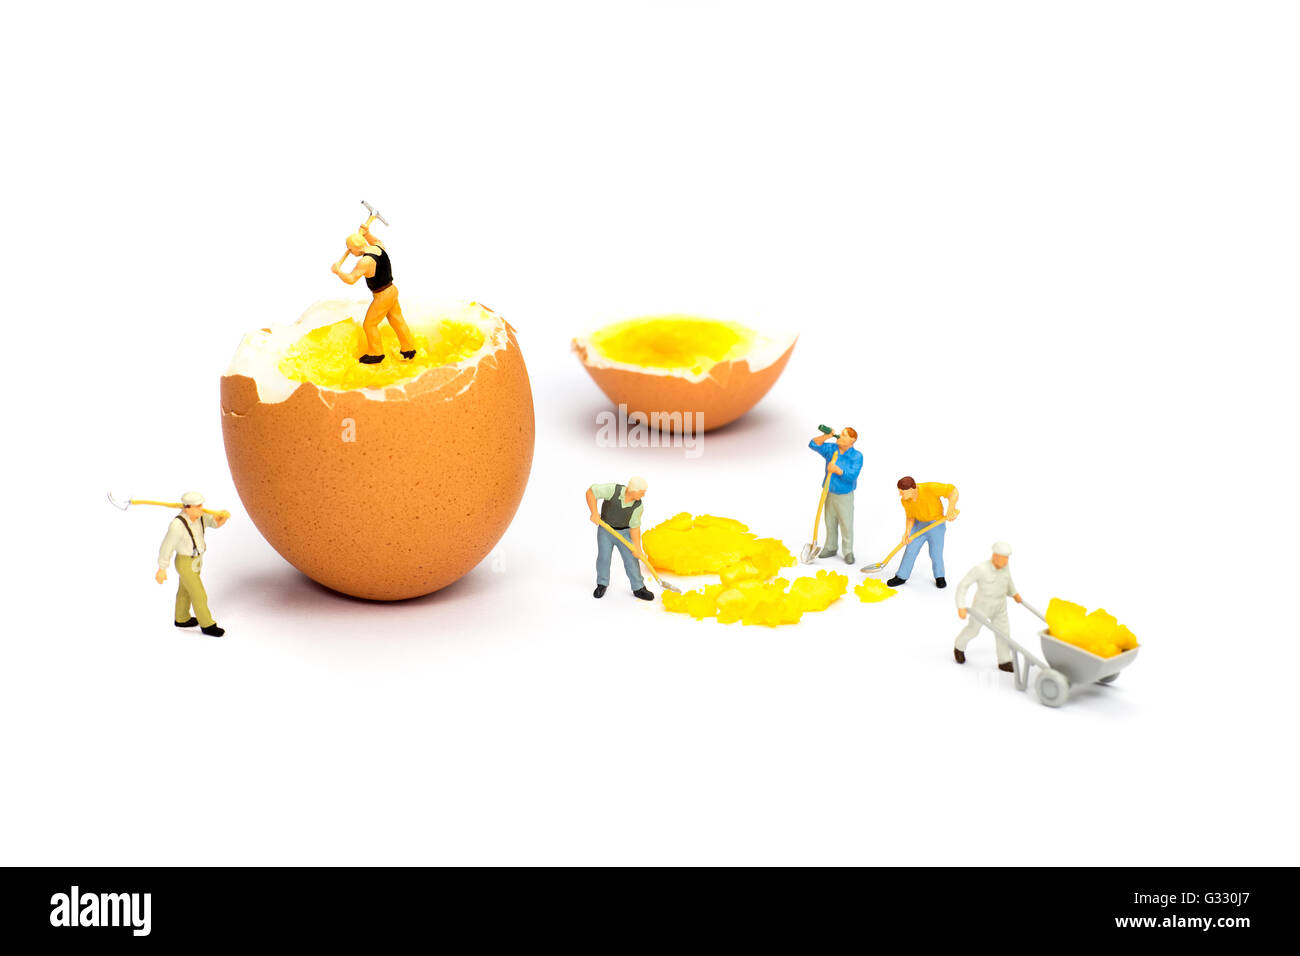 Team of miniature  construction workers figurines transporting chicken egg yolk - Stock Image